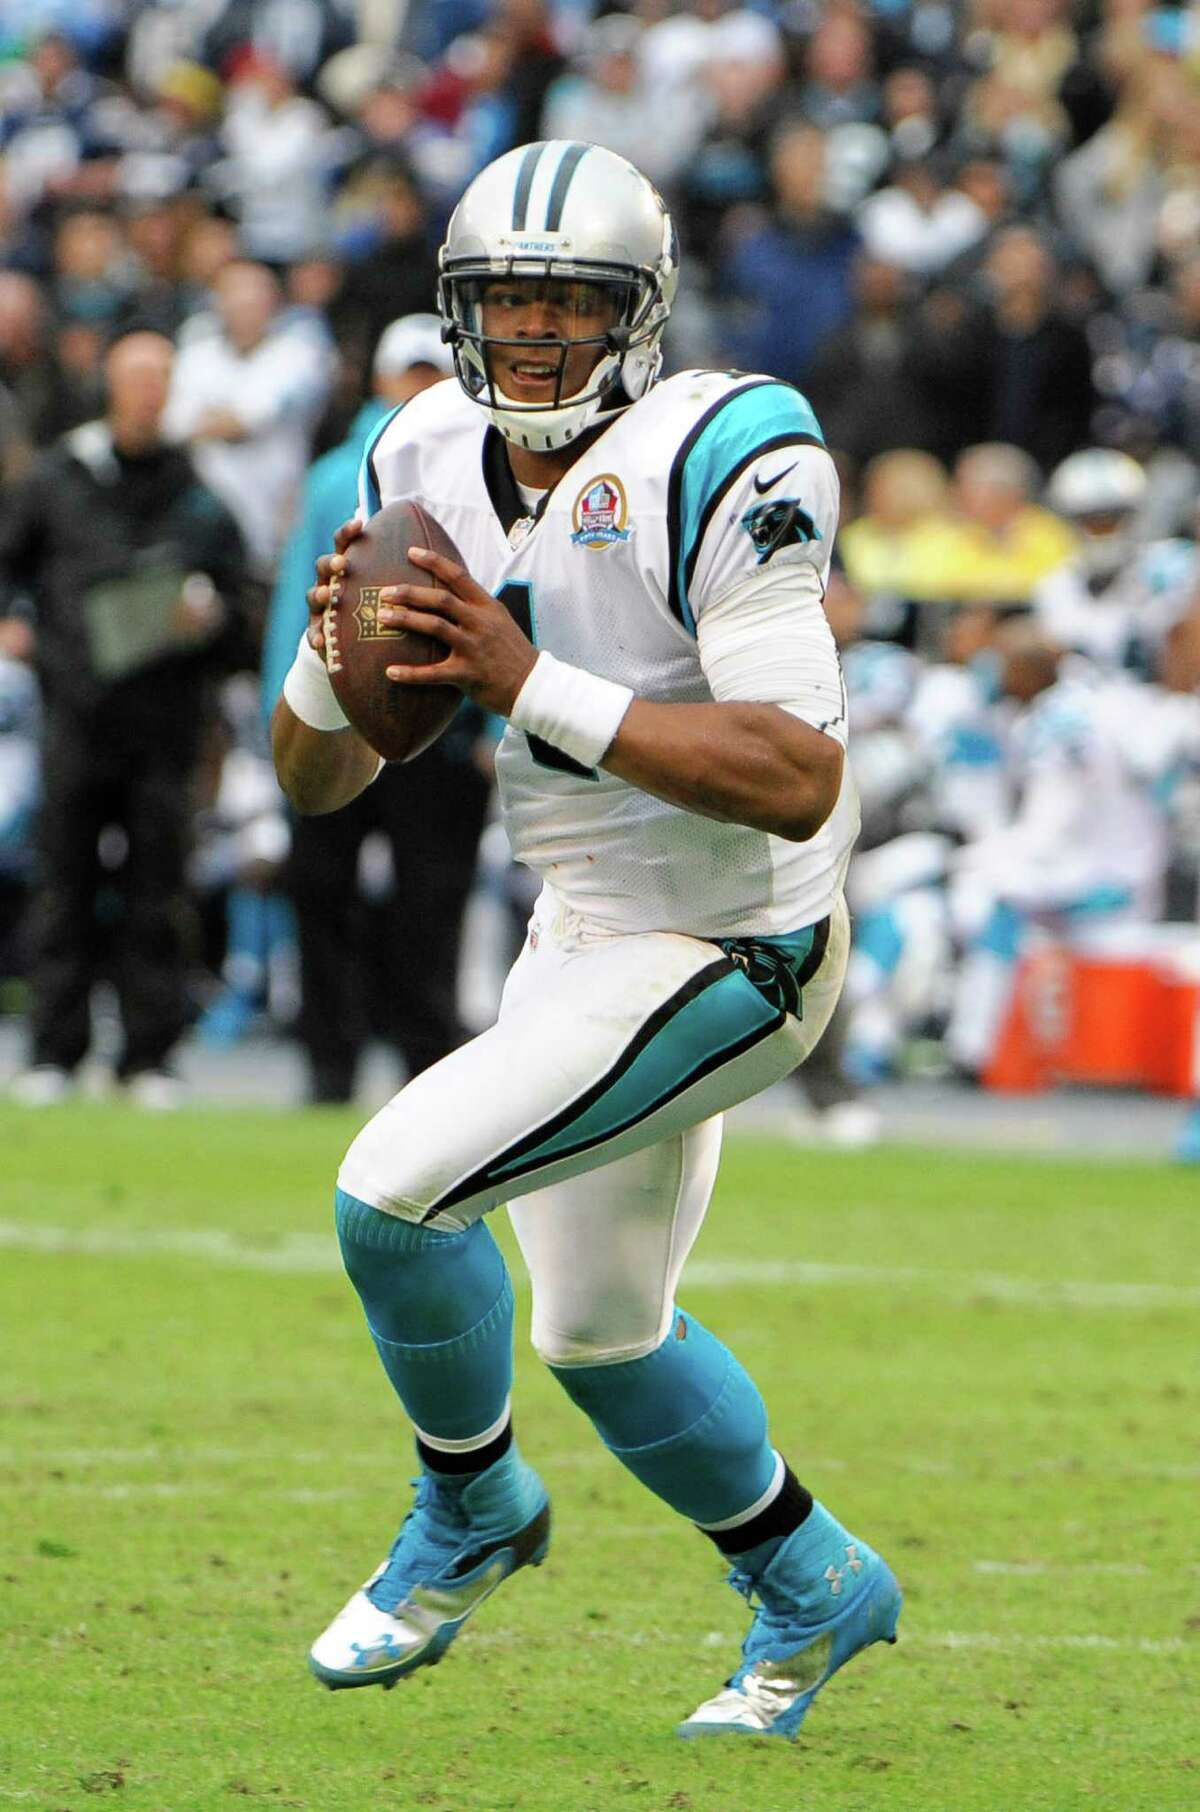 Carolina Panthers quarterback Cam Newton (1) throws during first half of an NFL football game against the San Diego Chargers Sunday, Dec. 16, 2012, in San Diego. (AP Photo/Denis Poroy)